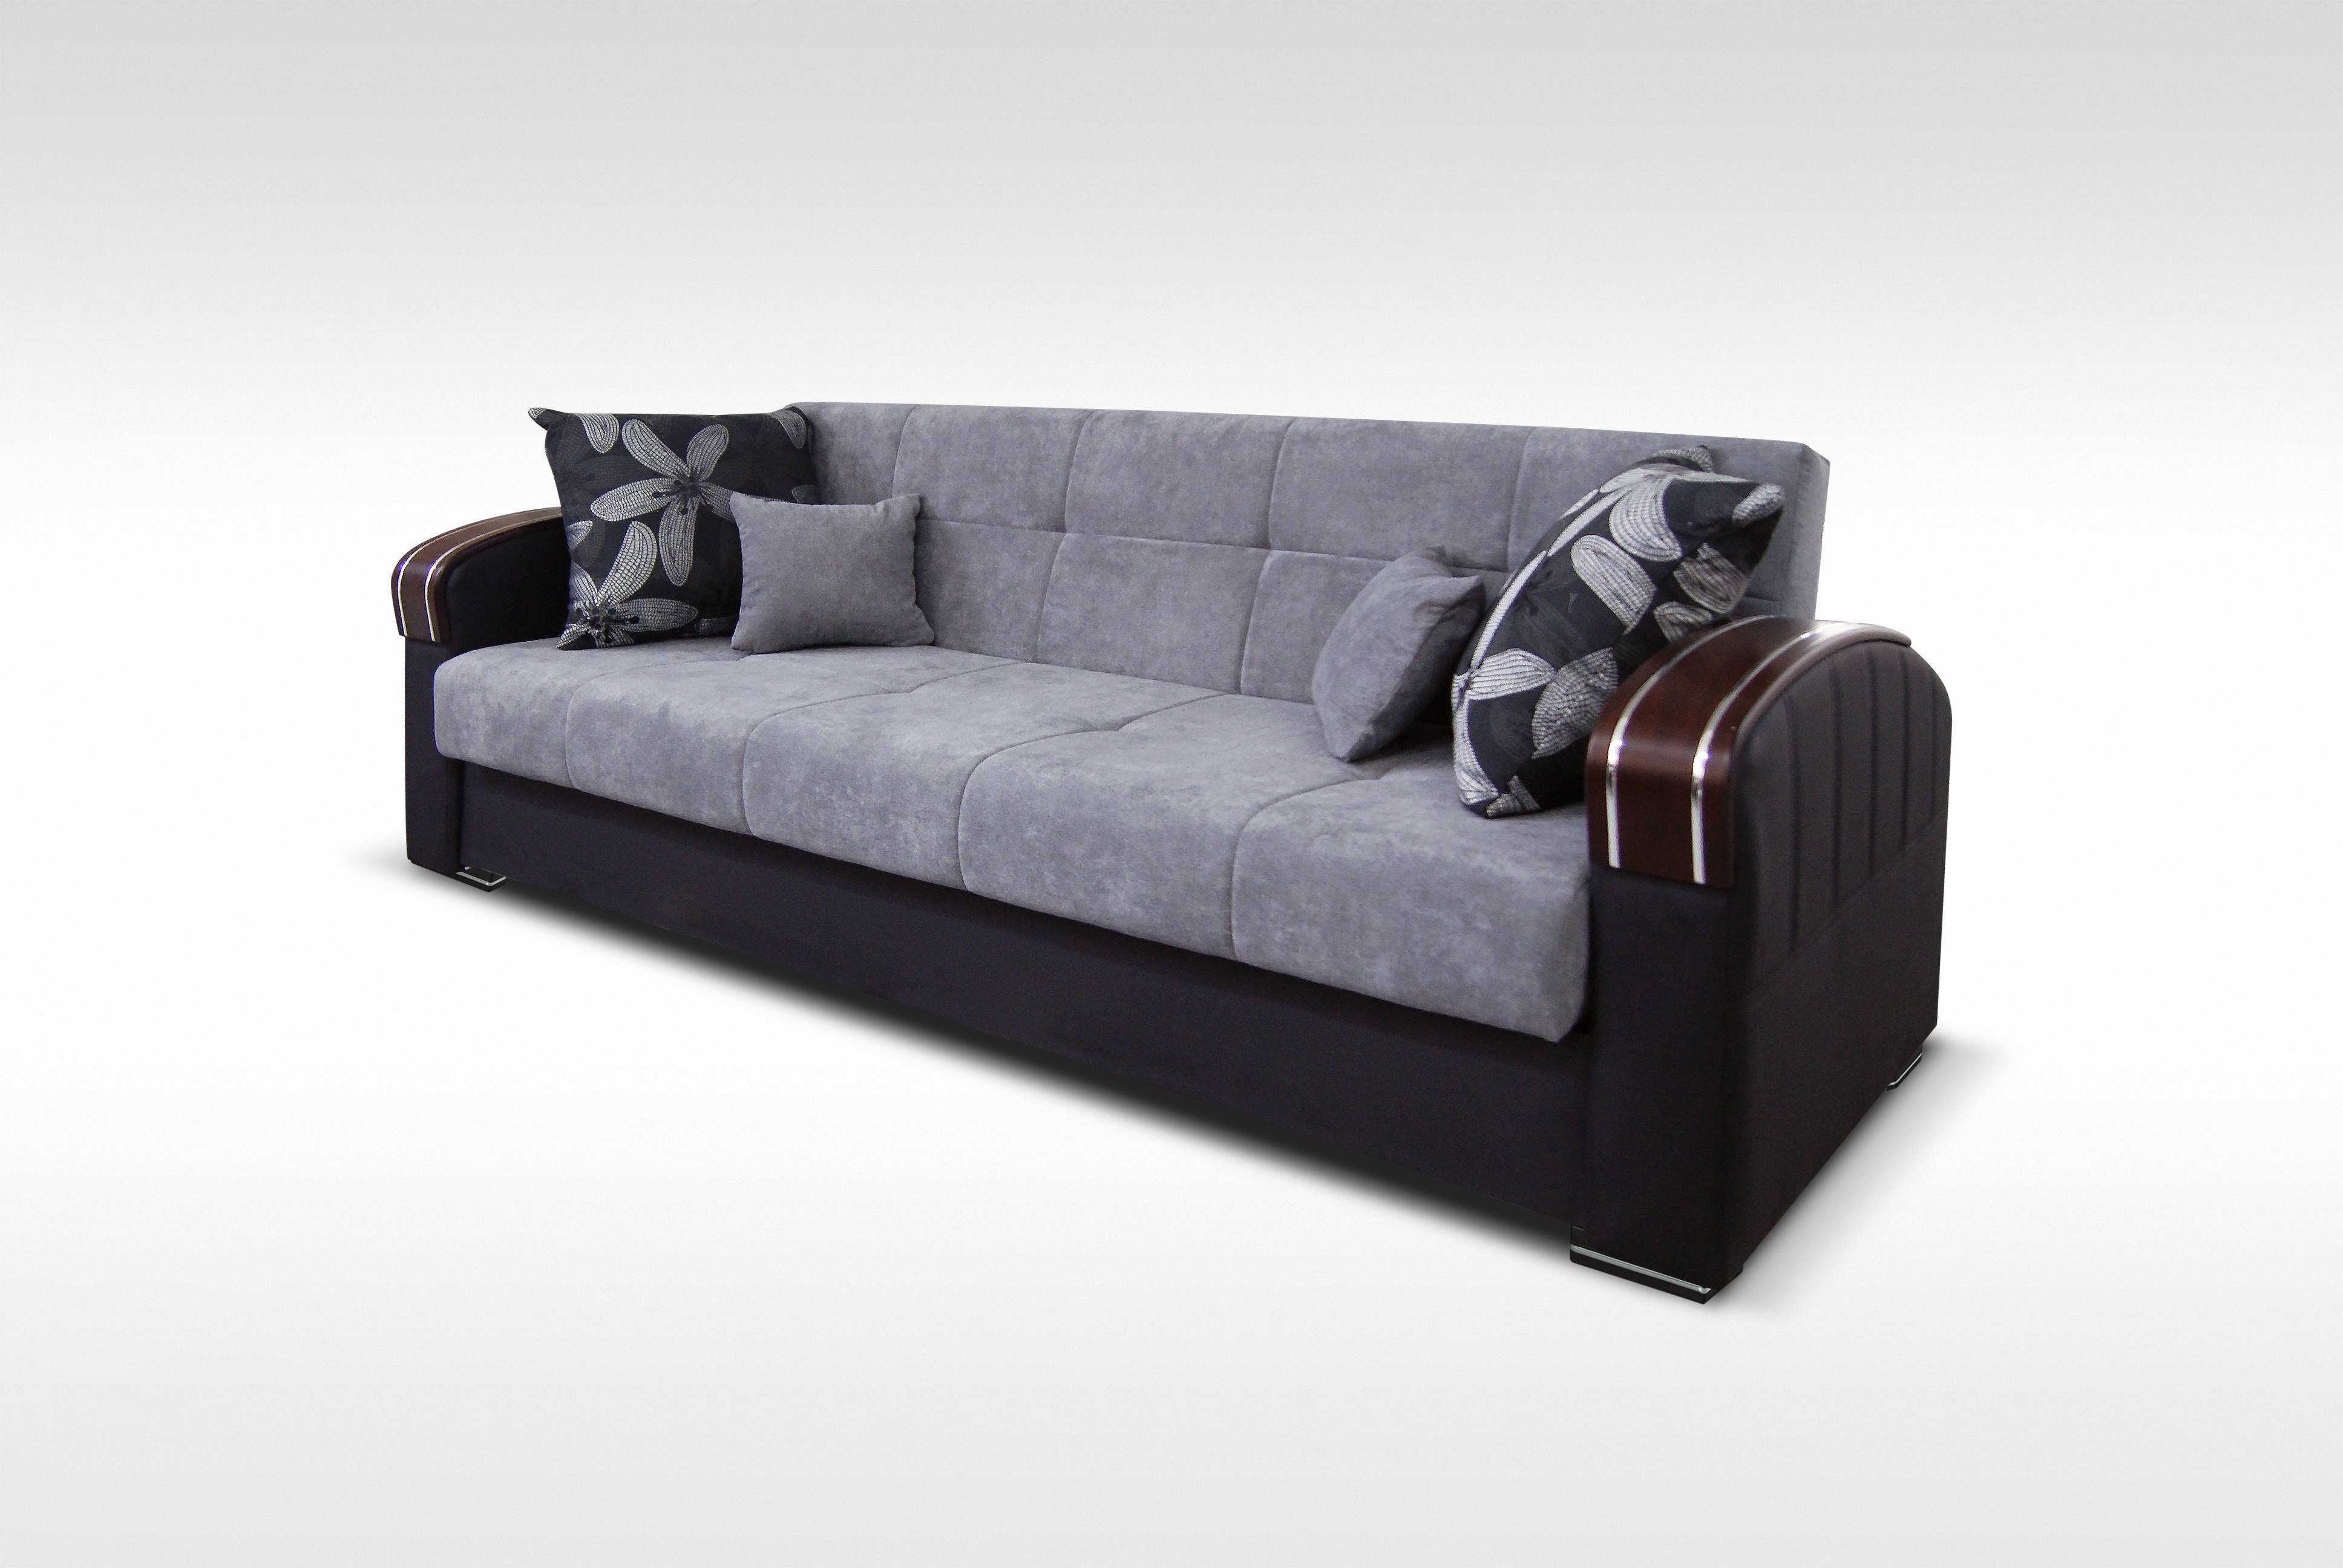 Genial Skyler Designs Samantha Gray Storage Sofa Bed Click To Enlarge ...